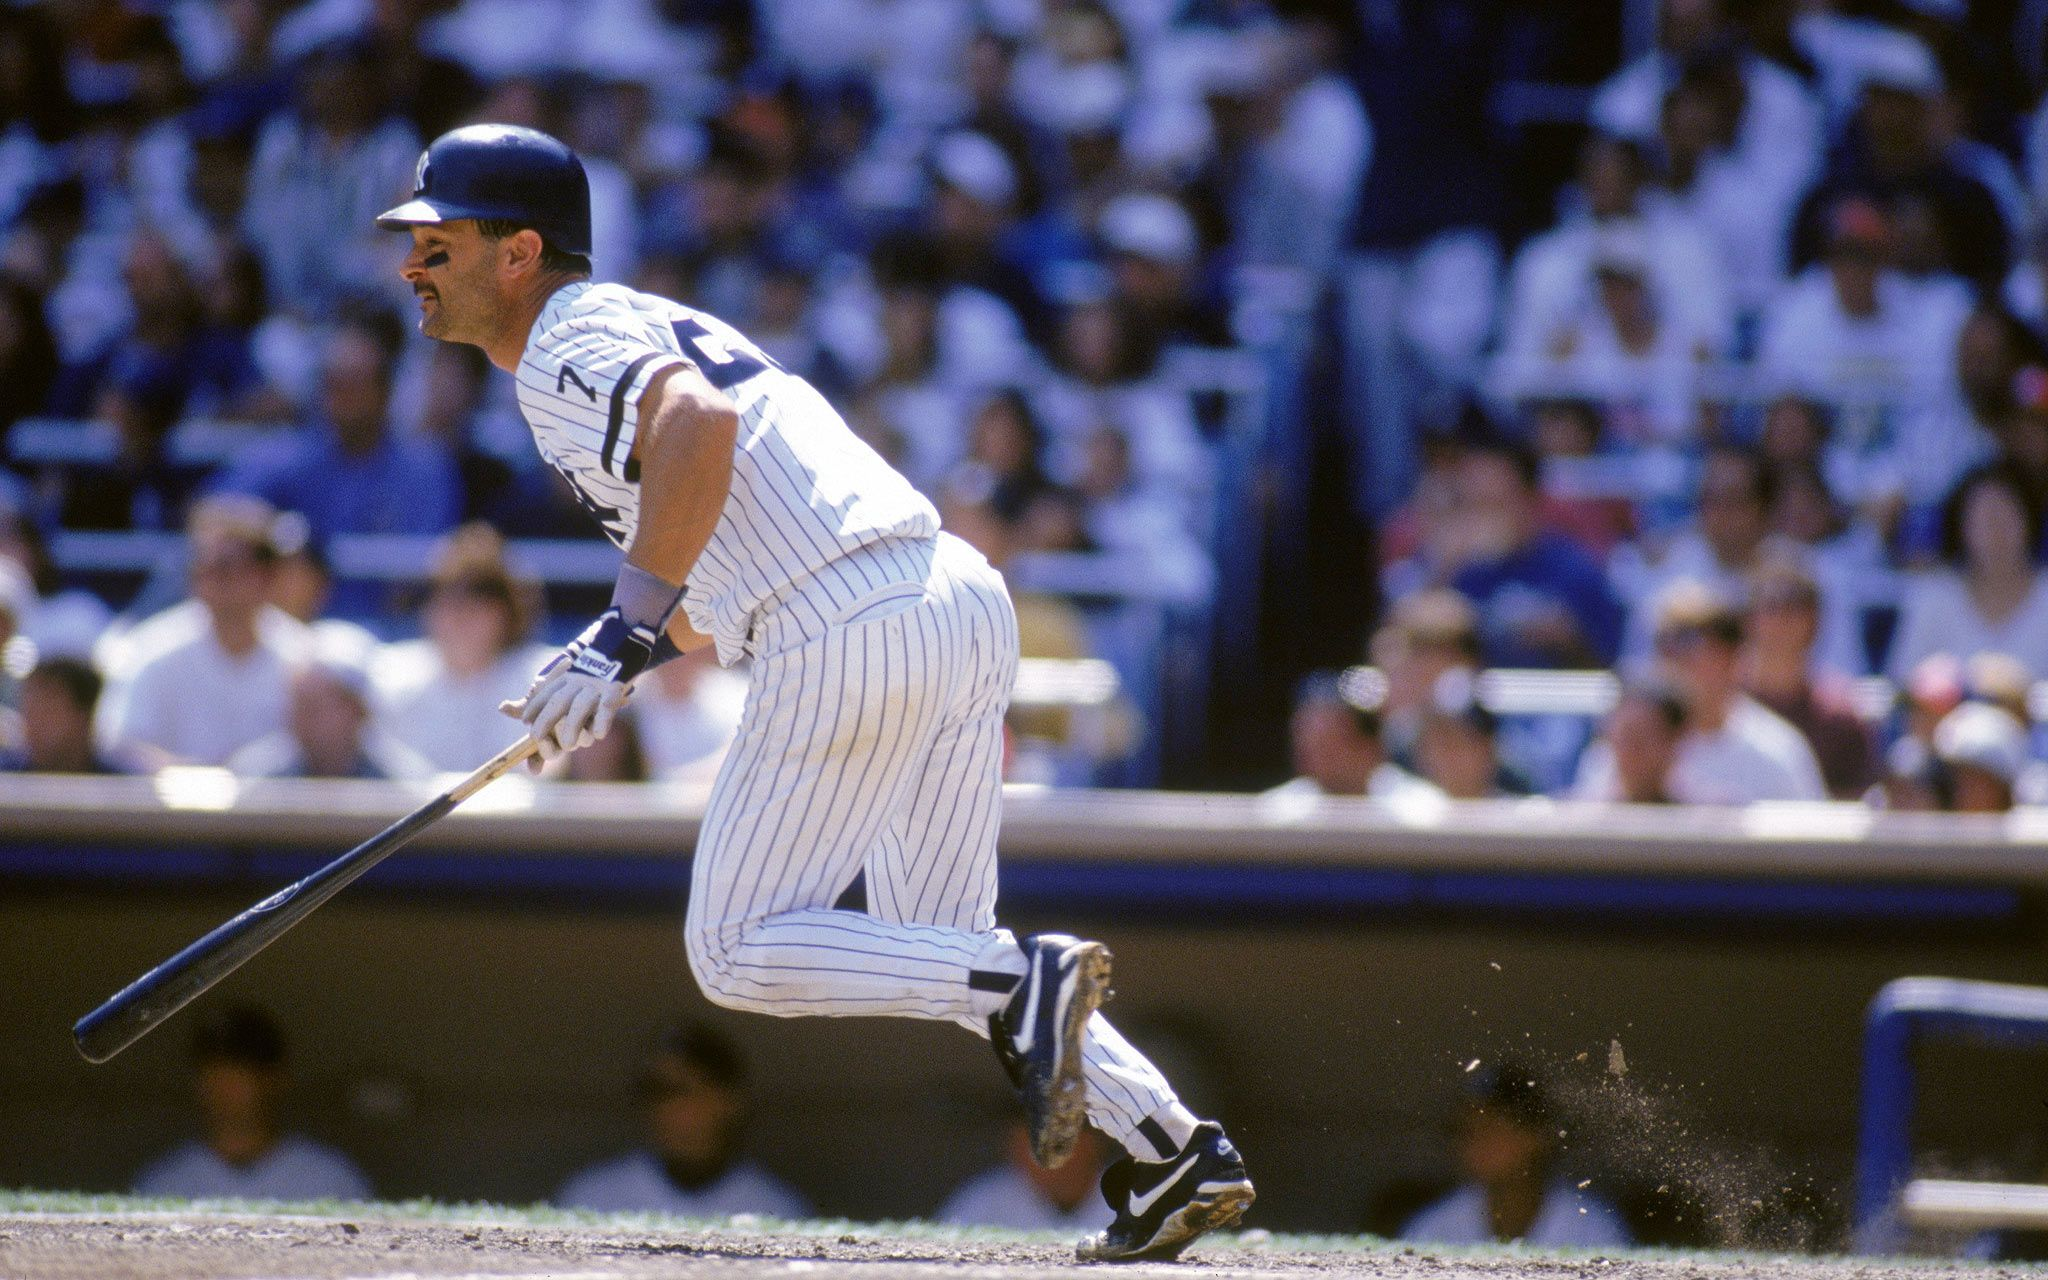 Don Mattingly S 10 Greatest Moments Don Mattingly Yankees Pictures New York Yankees